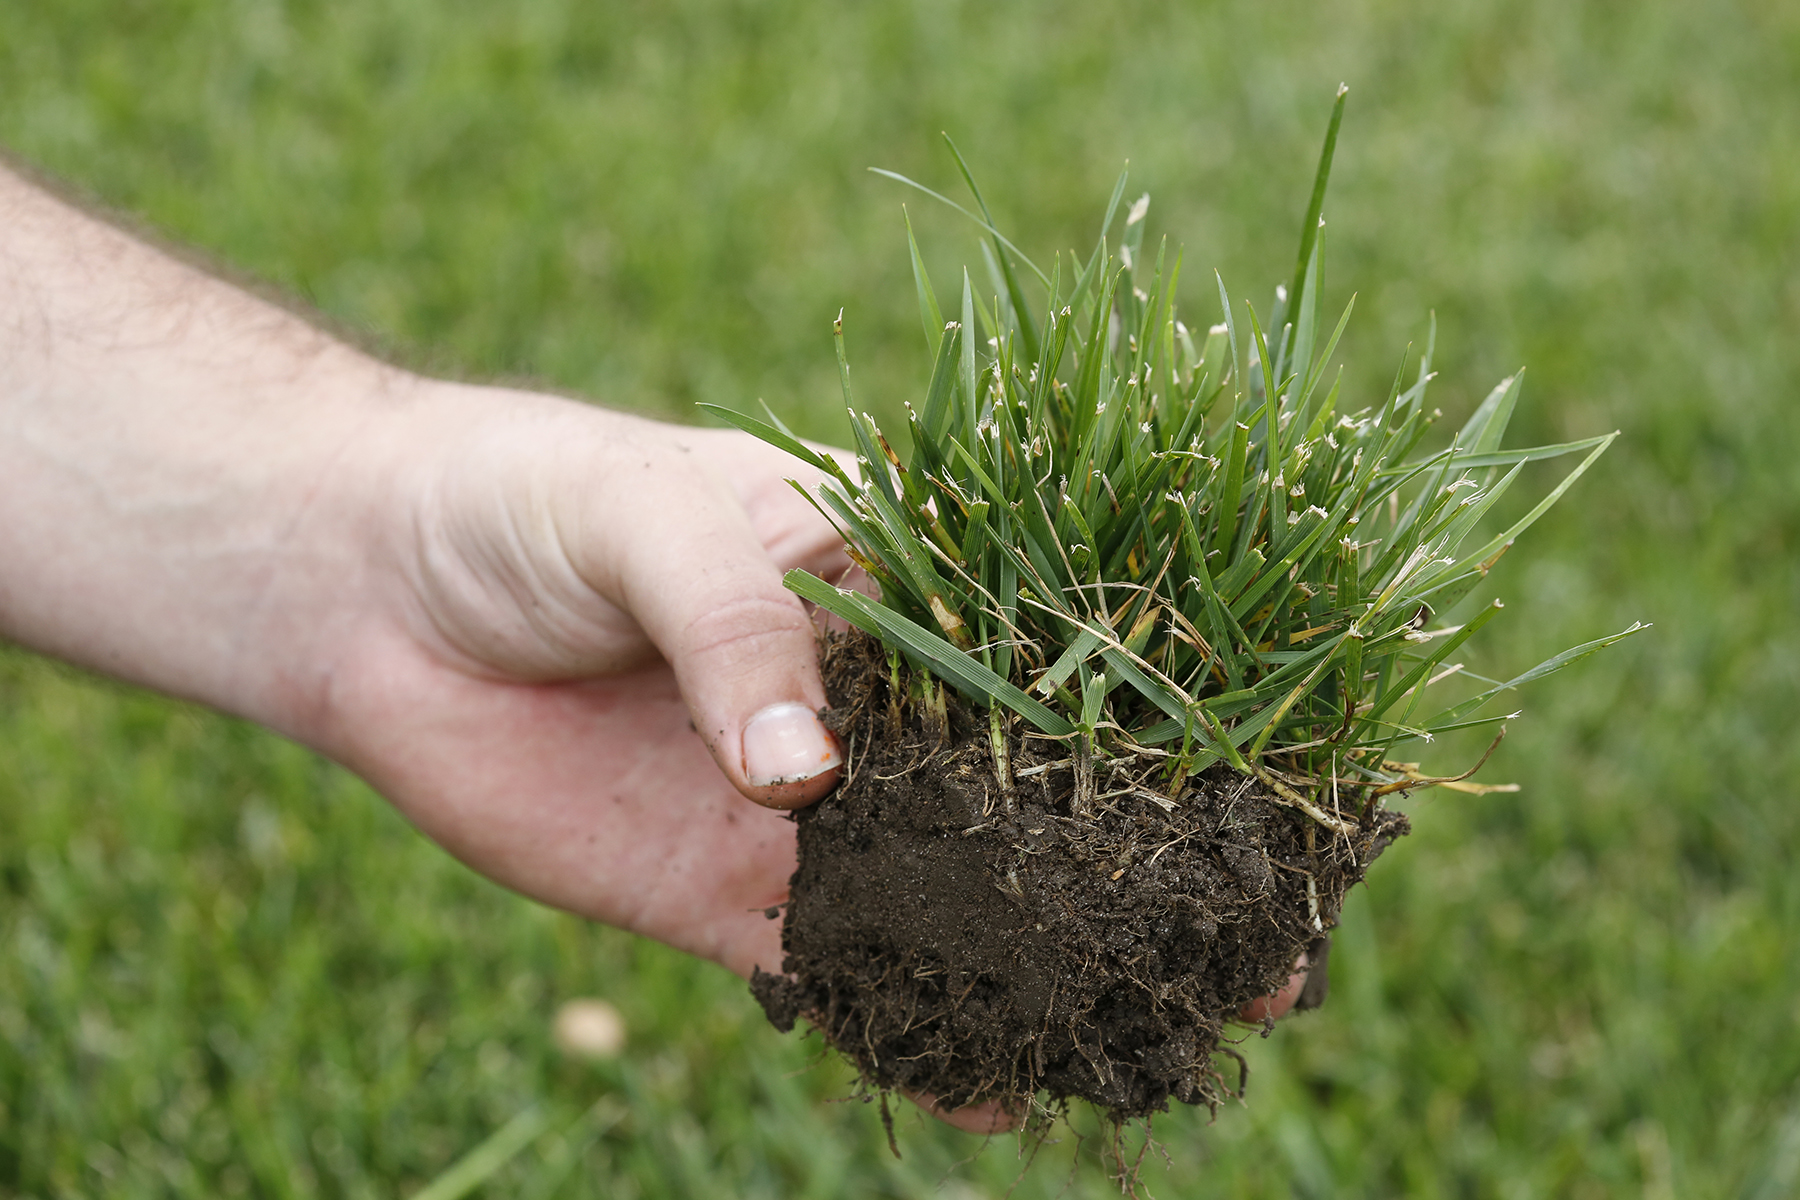 Turfgrass Research Is Highlight of July 23 Field Day near Ames ...